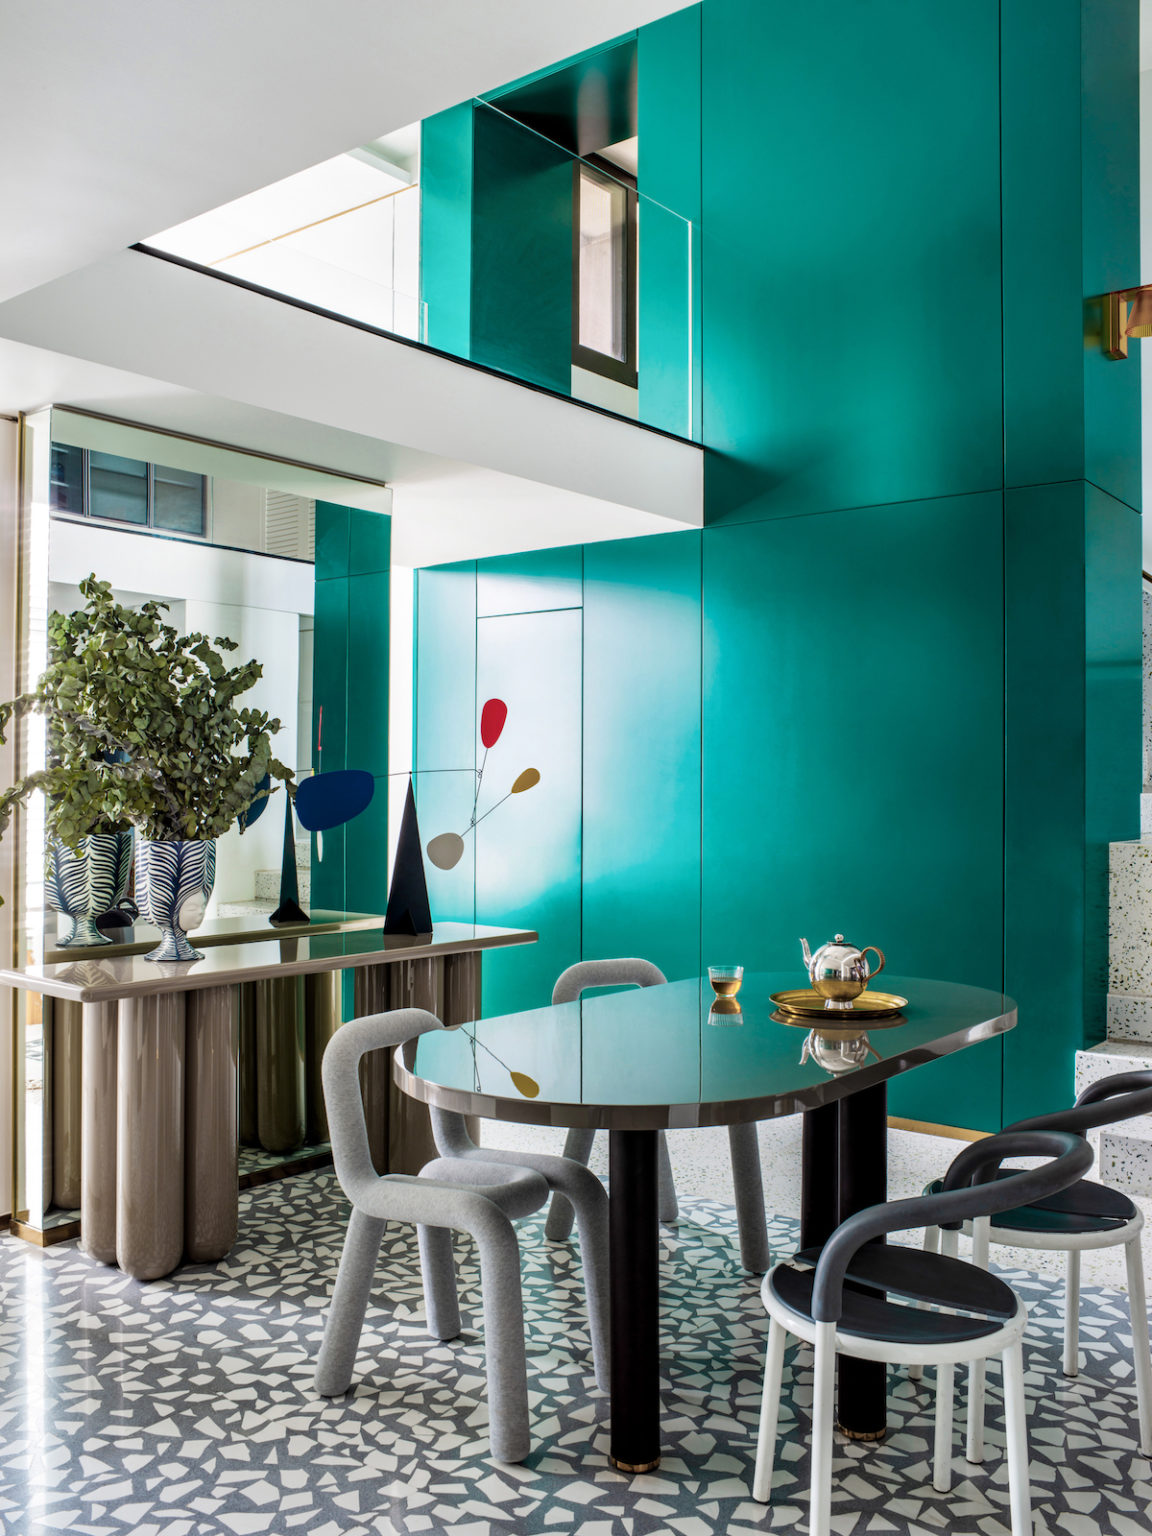 The dining space is innovative due to the pieces that are used to furnish it   these are bold ones